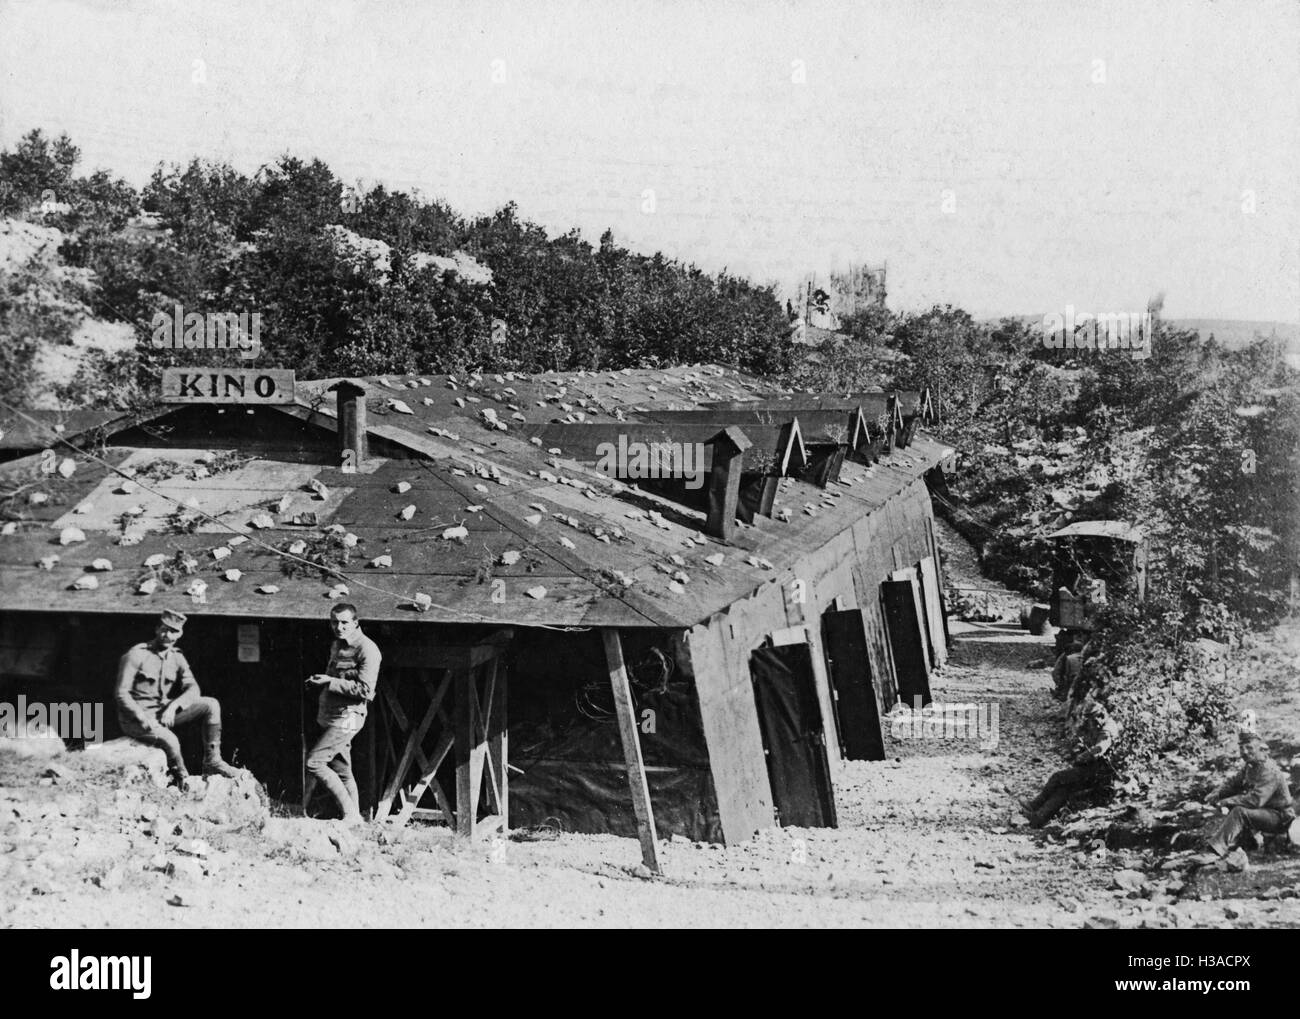 Cinema for soldiers during the First World War, 1916 Stock Photo